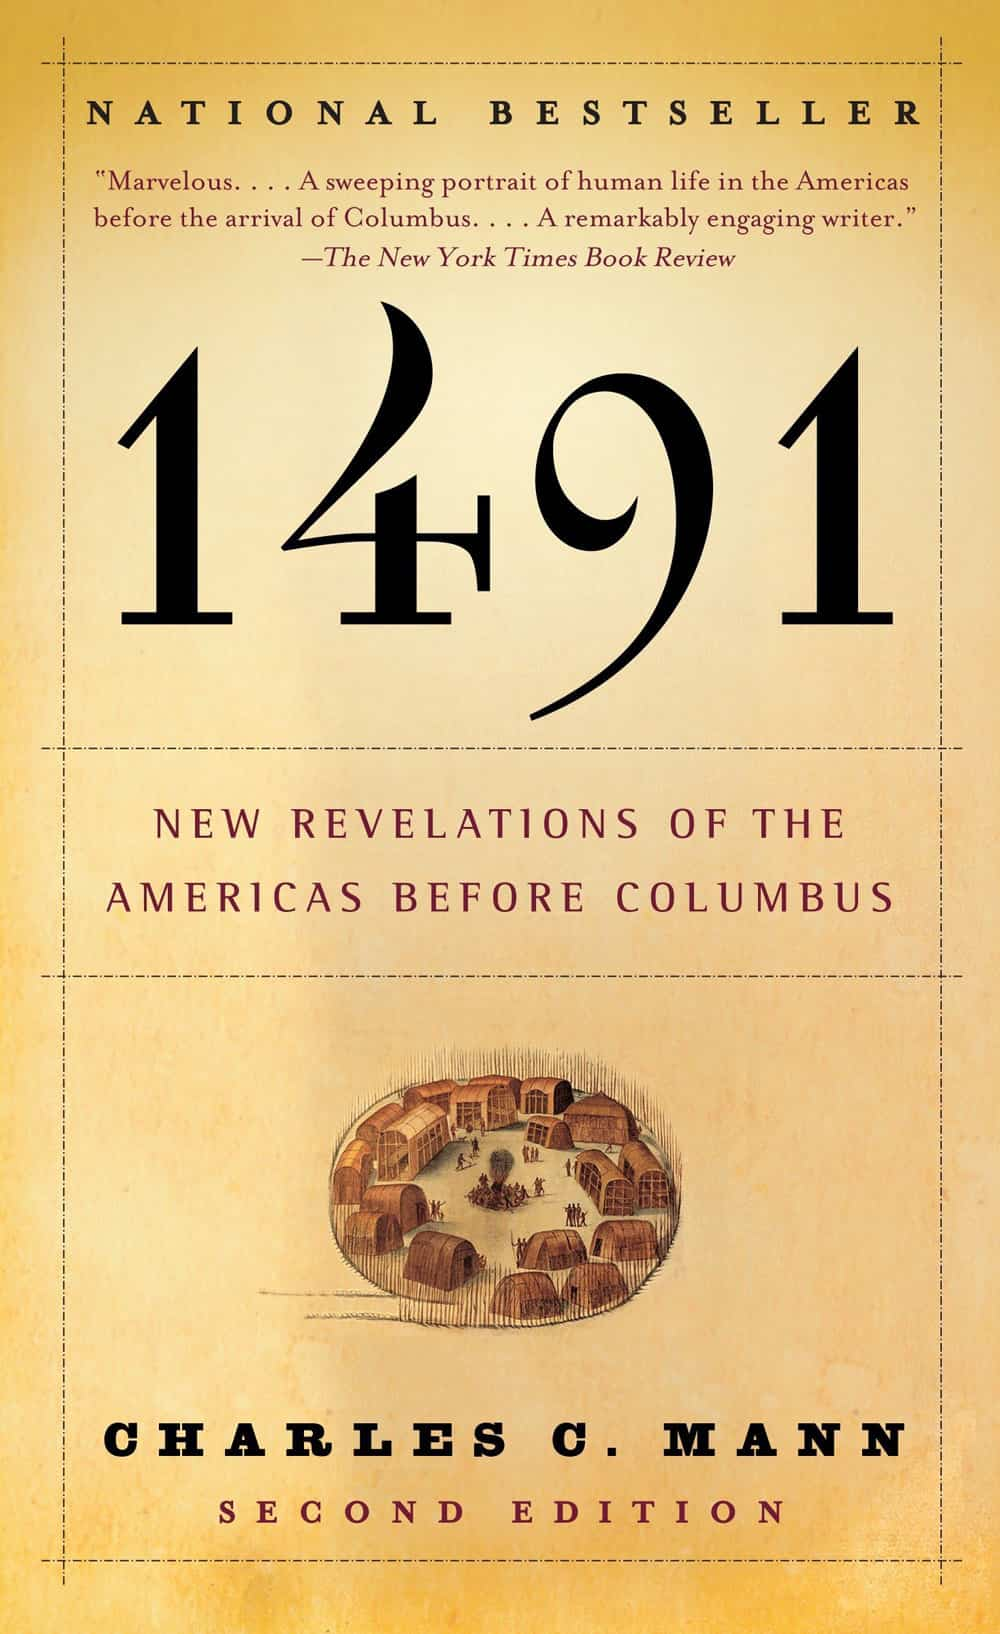 The cover of 1491